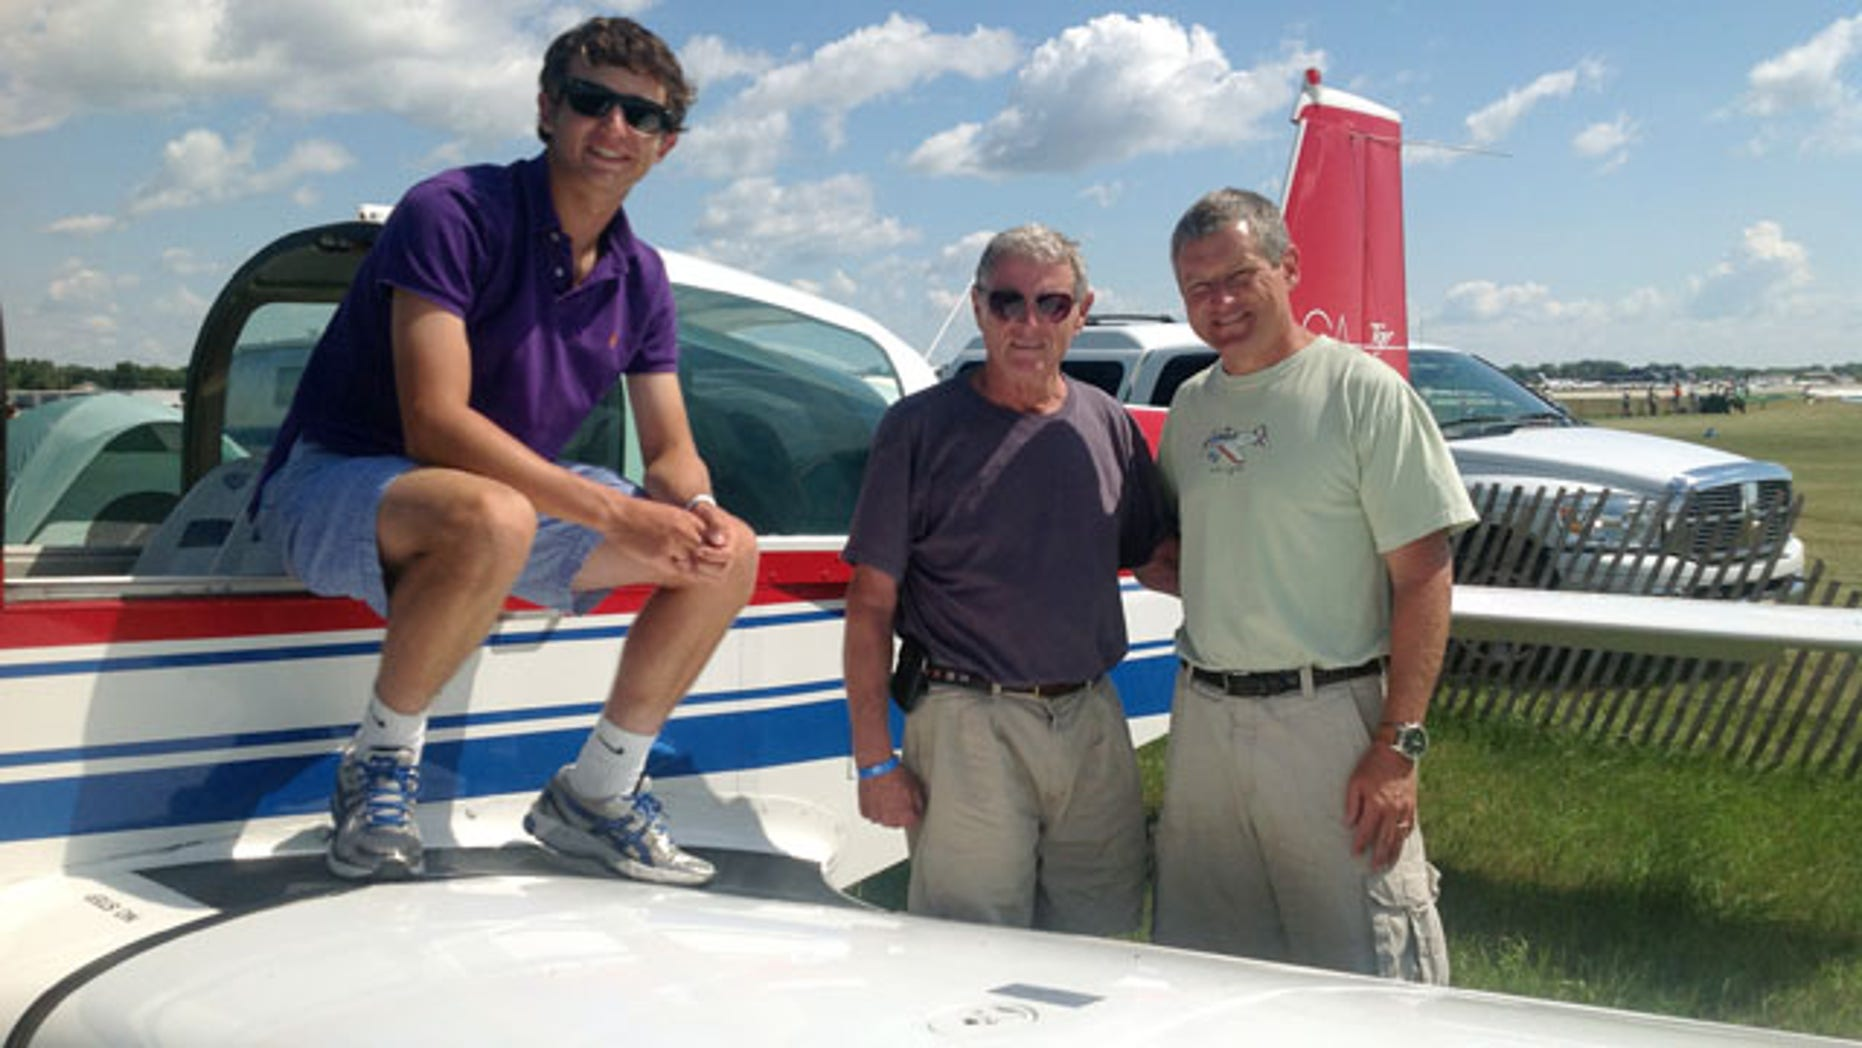 This photo Aug. 1, 2013 photo, courtesy of Sen. James Inhofe, R-Okla., shows from left, Inhofe's grandson Cole Inhofe, Sen. Inhofe and Inhofe's son Perry Inhofe in Oshkosh, Wis. Dr. Perry Inhofe, was killed in a weekend plane crash in northeast Oklahoma. (AP Photo/Courtesy of Sen. James Inhofe, Ryan Jackson)